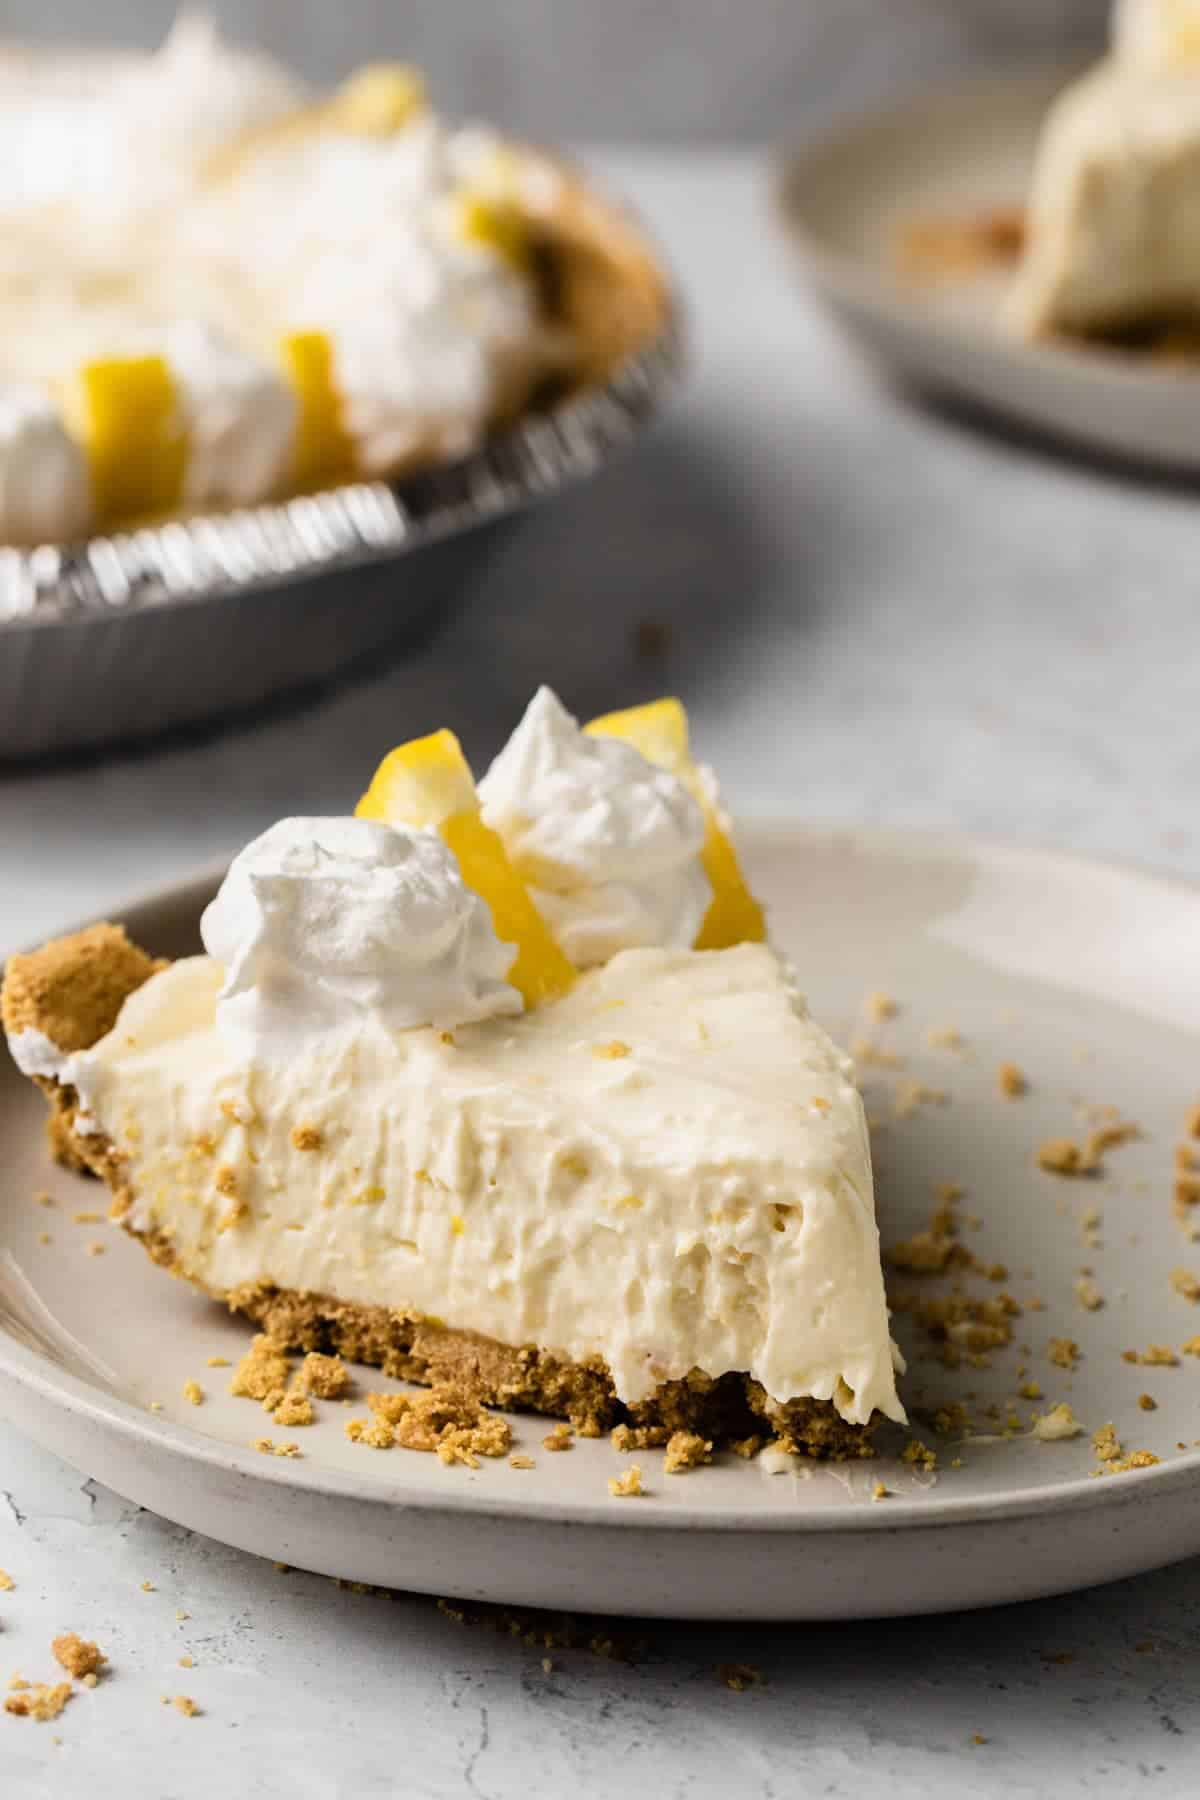 close up view of a slice of lemon pie on a white plate with whole pie in background